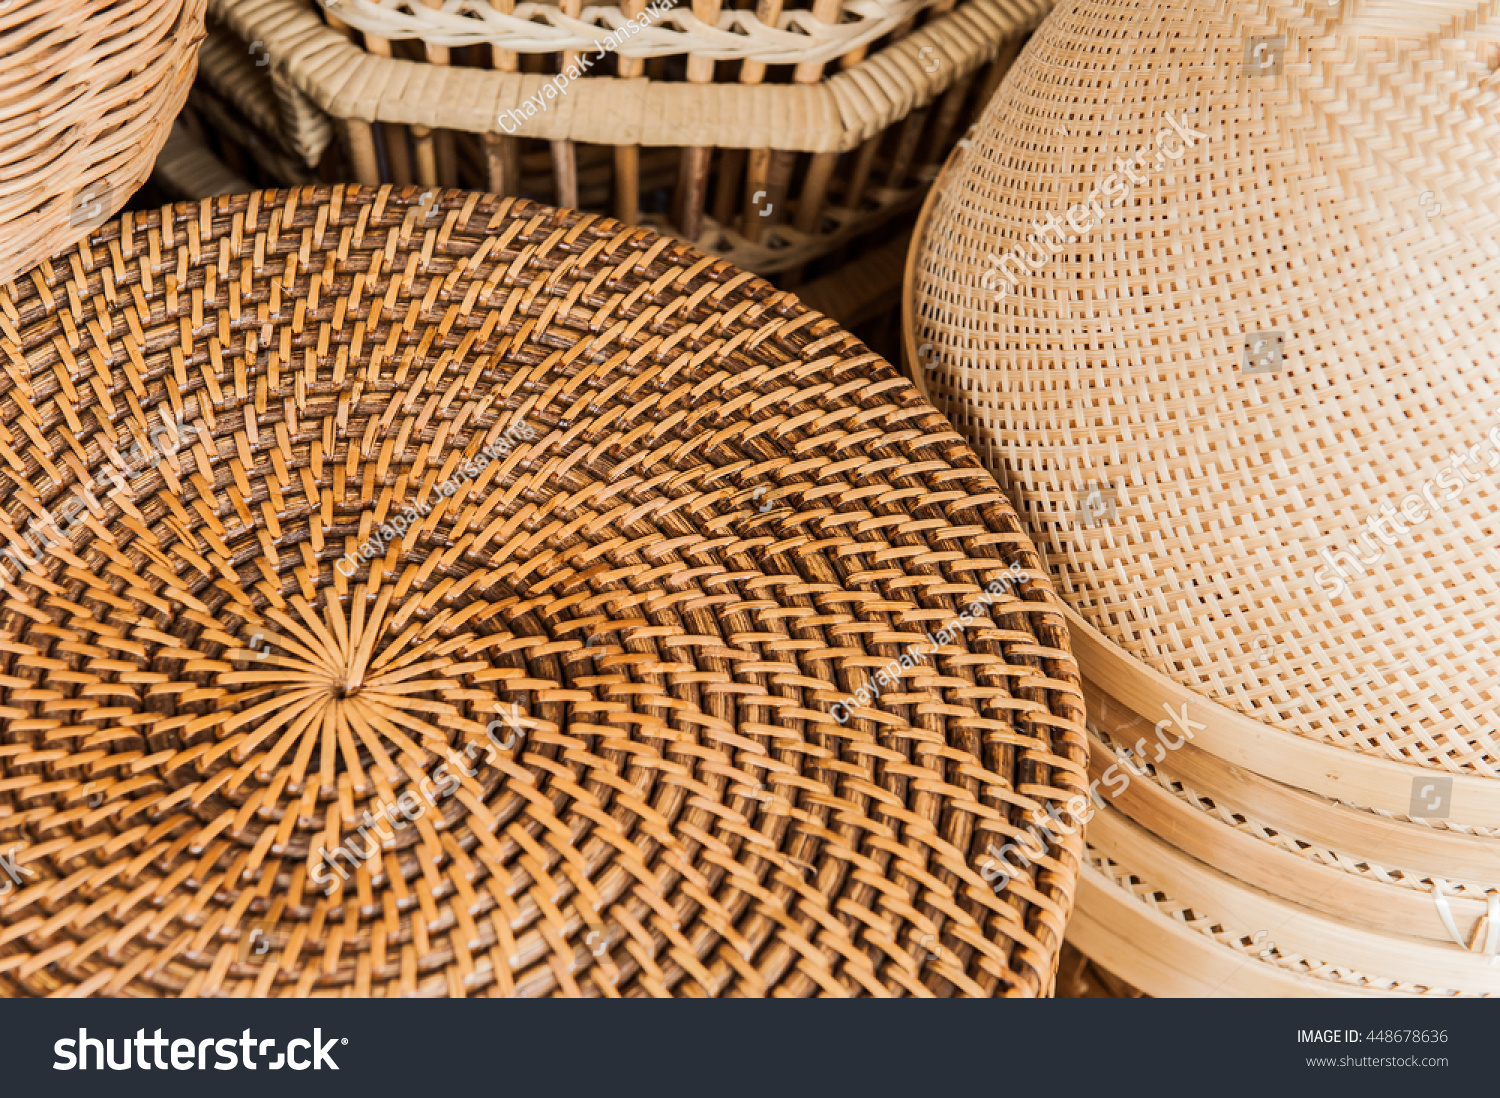 Rattan Basket Weaving Patterns : Woven rattan round weaving stock photo